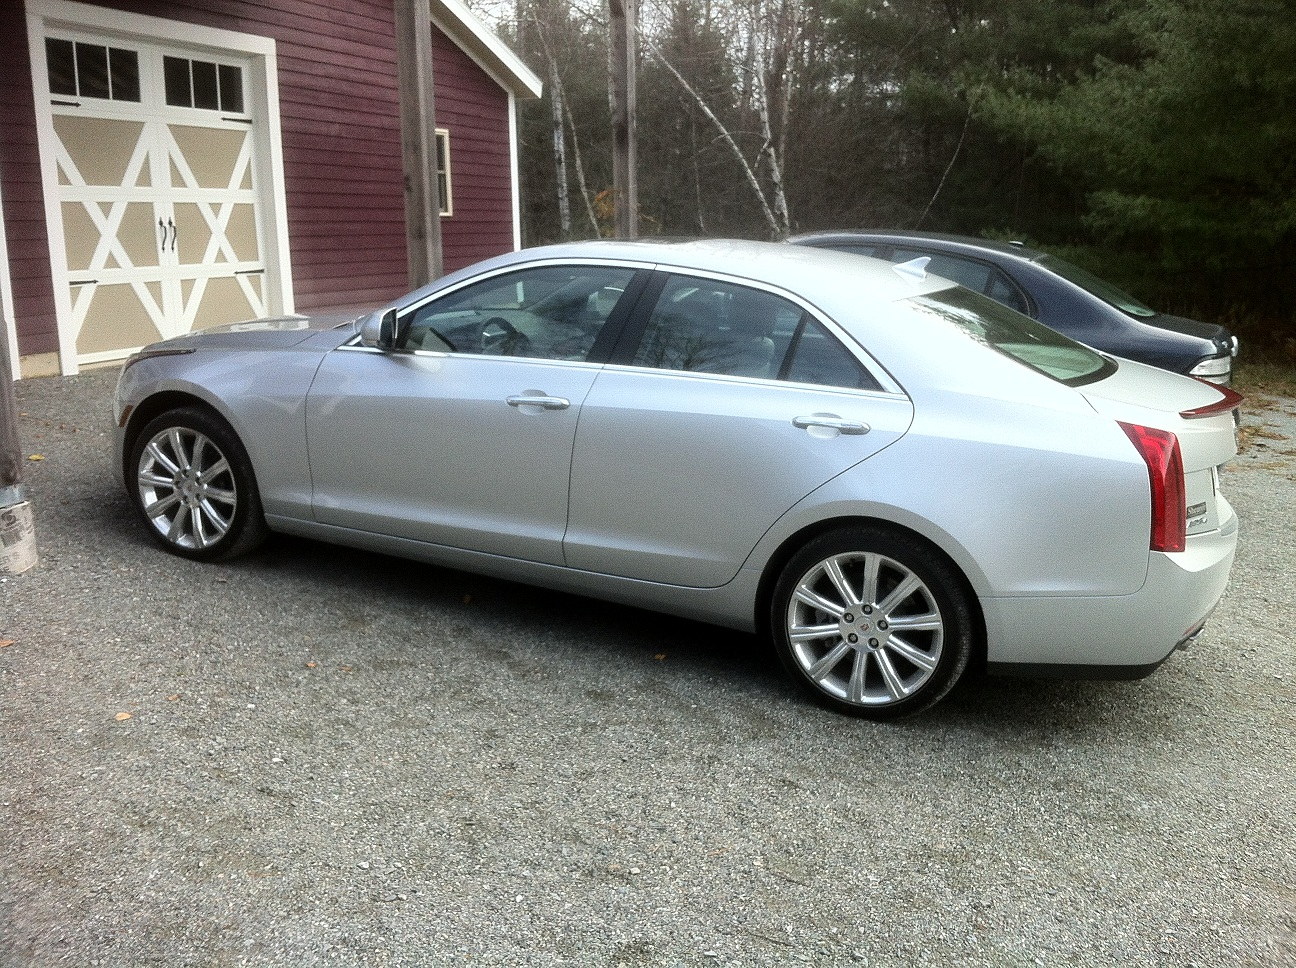 2013 Silver Metallic Cadillac ATS 2.0T AWD Automatic picture, mods, upgrades